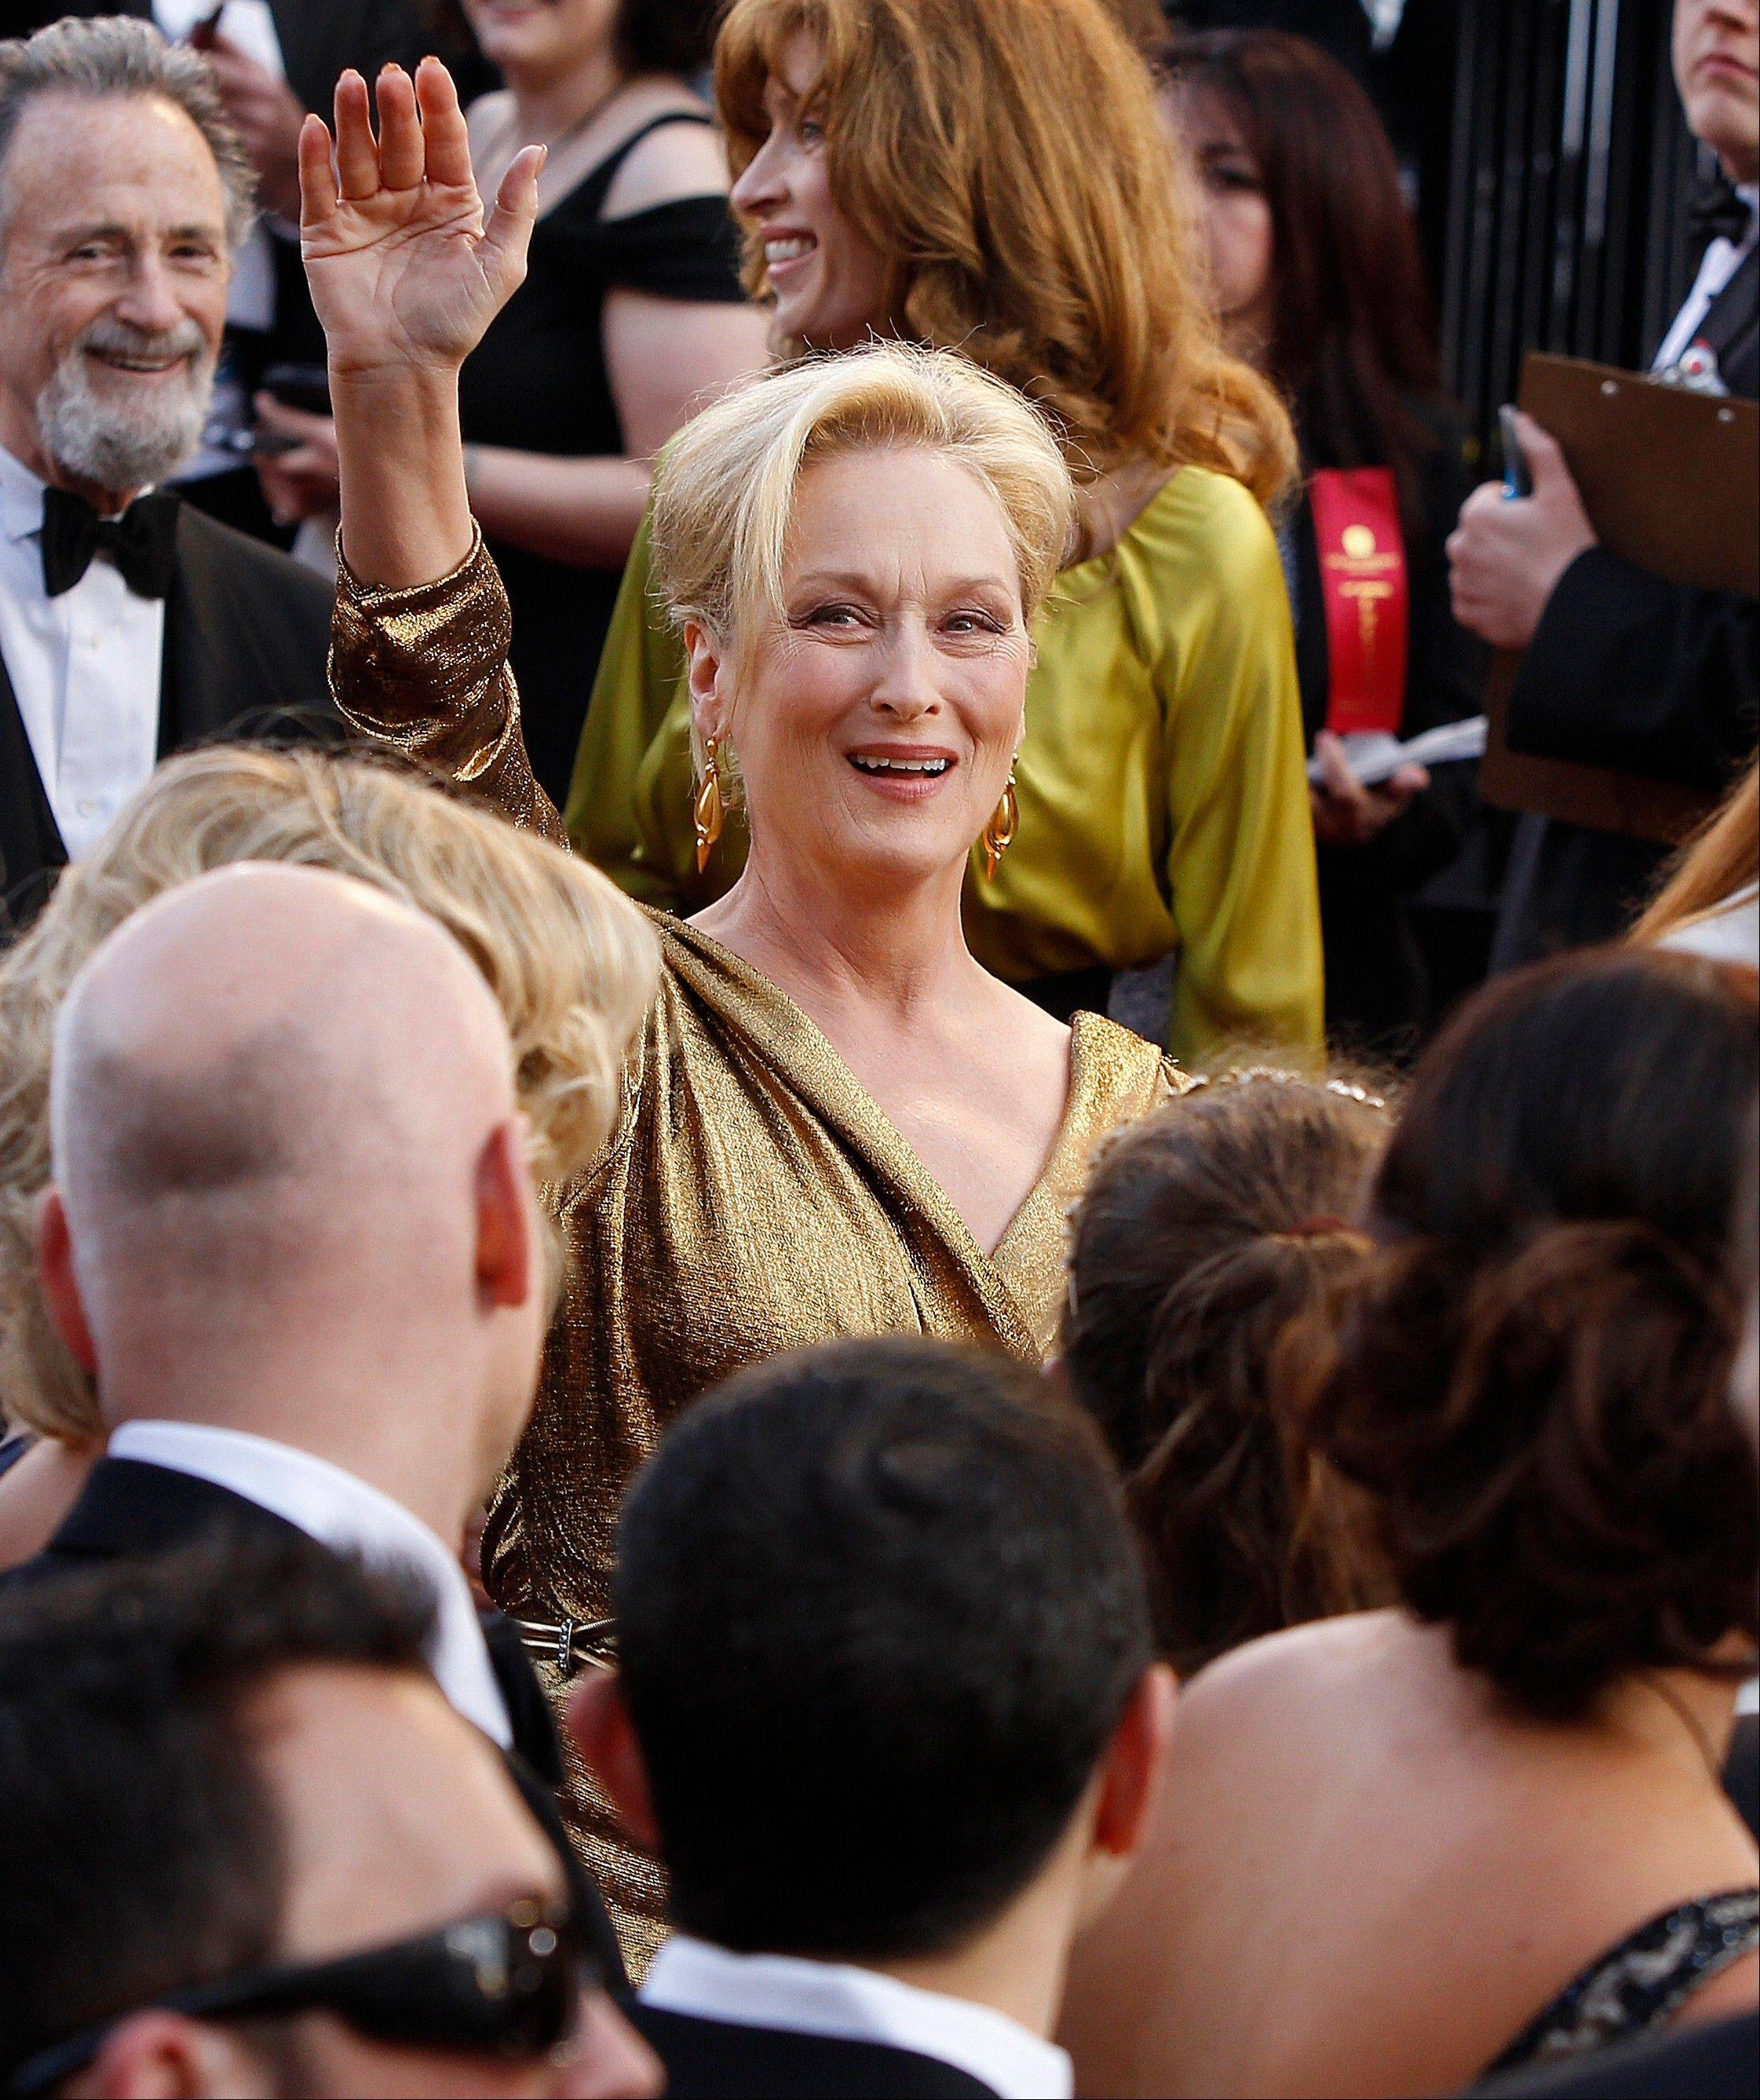 The iconic Meryl Streep arrives for the Oscars in a Lanvin gown.